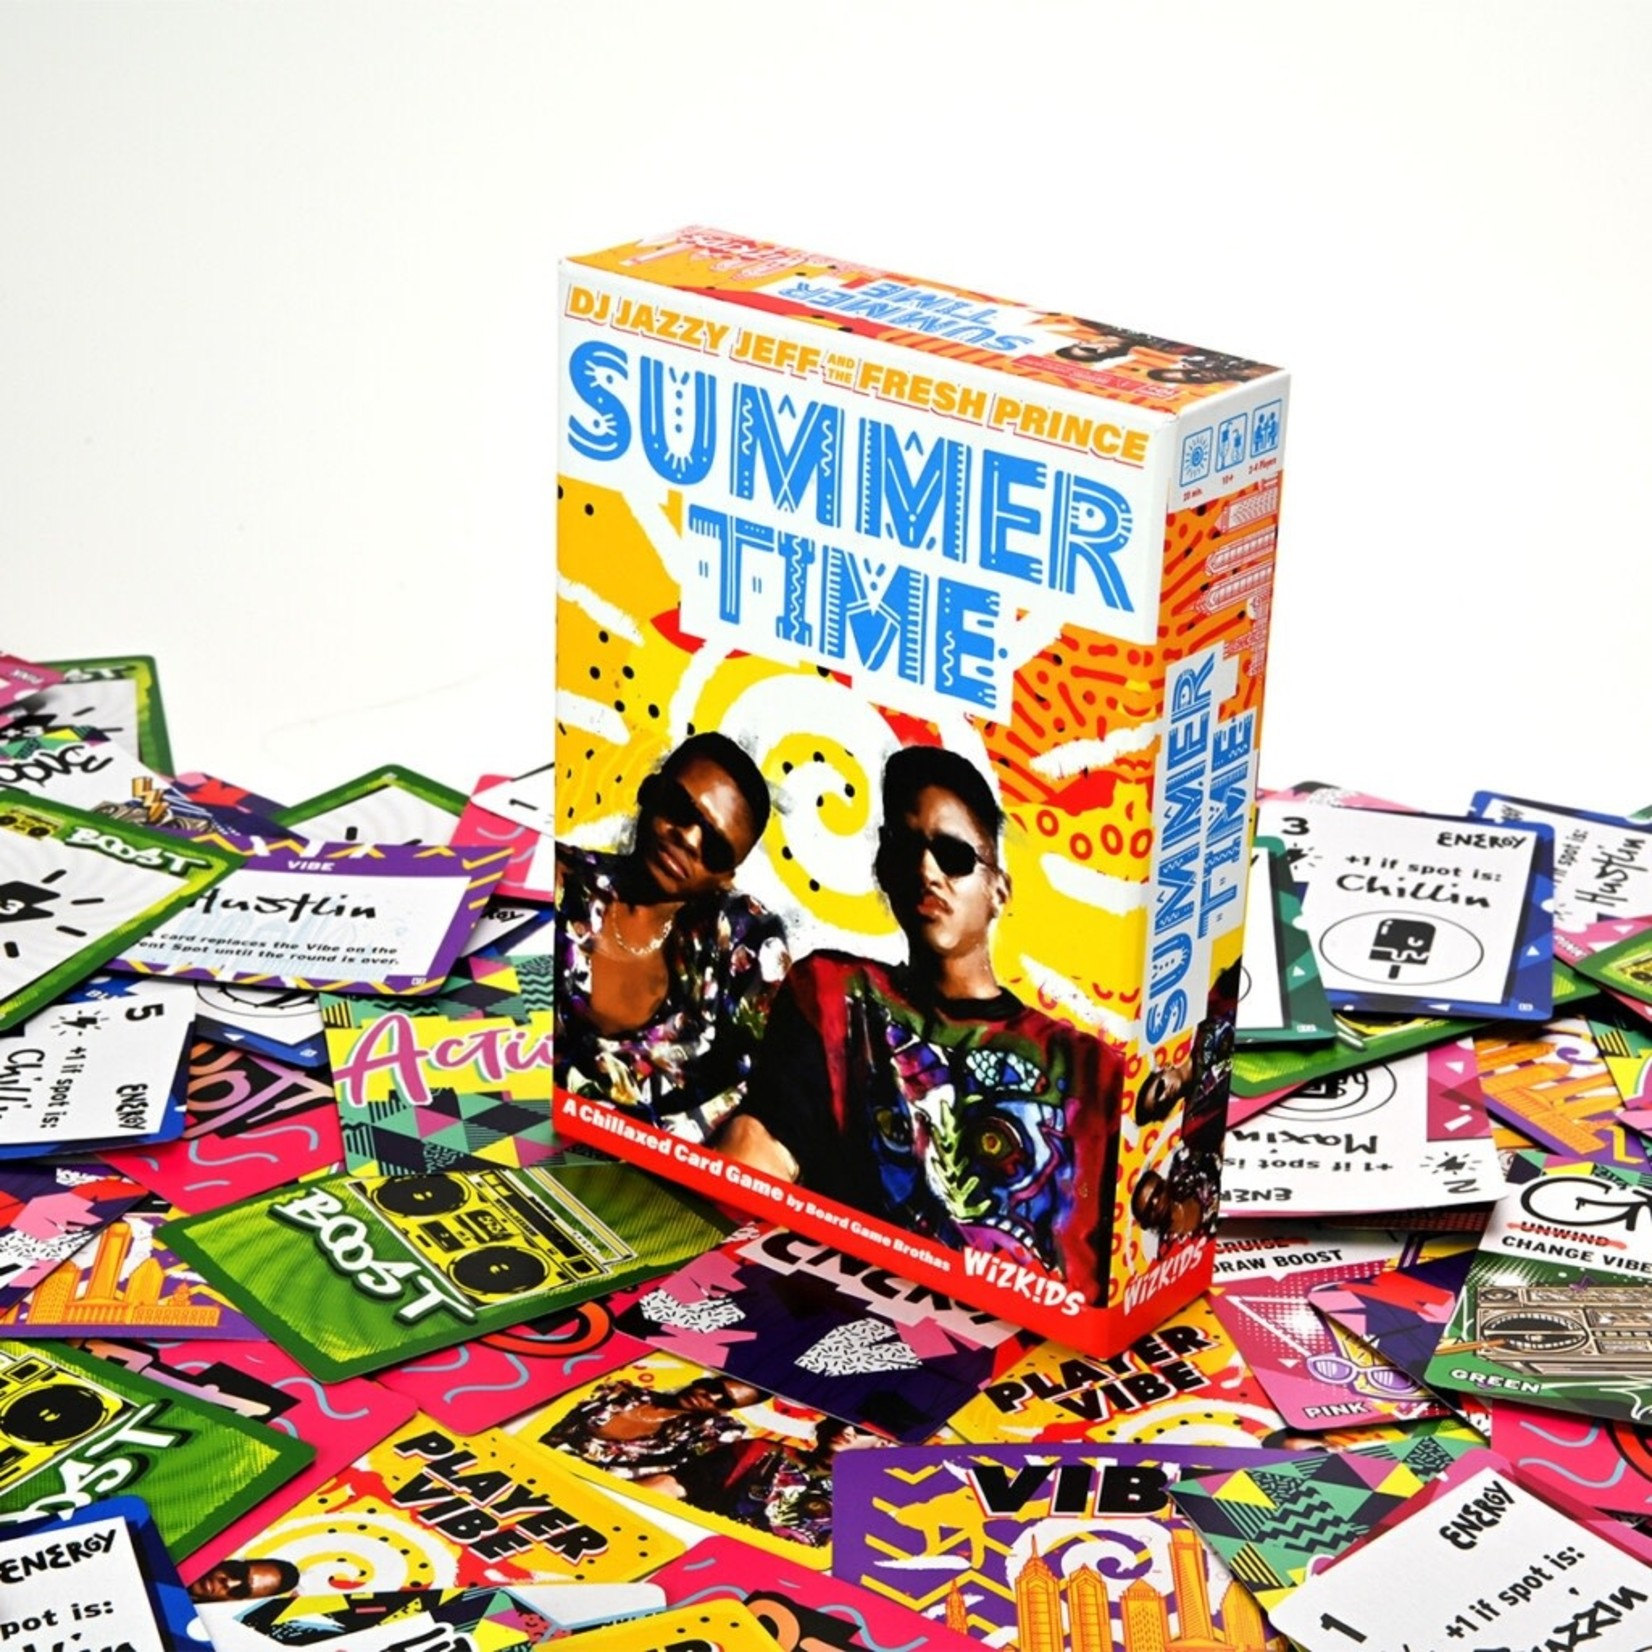 PRE-ORDER DJ Jazzy Jeff and the Fresh Prince: Summertime